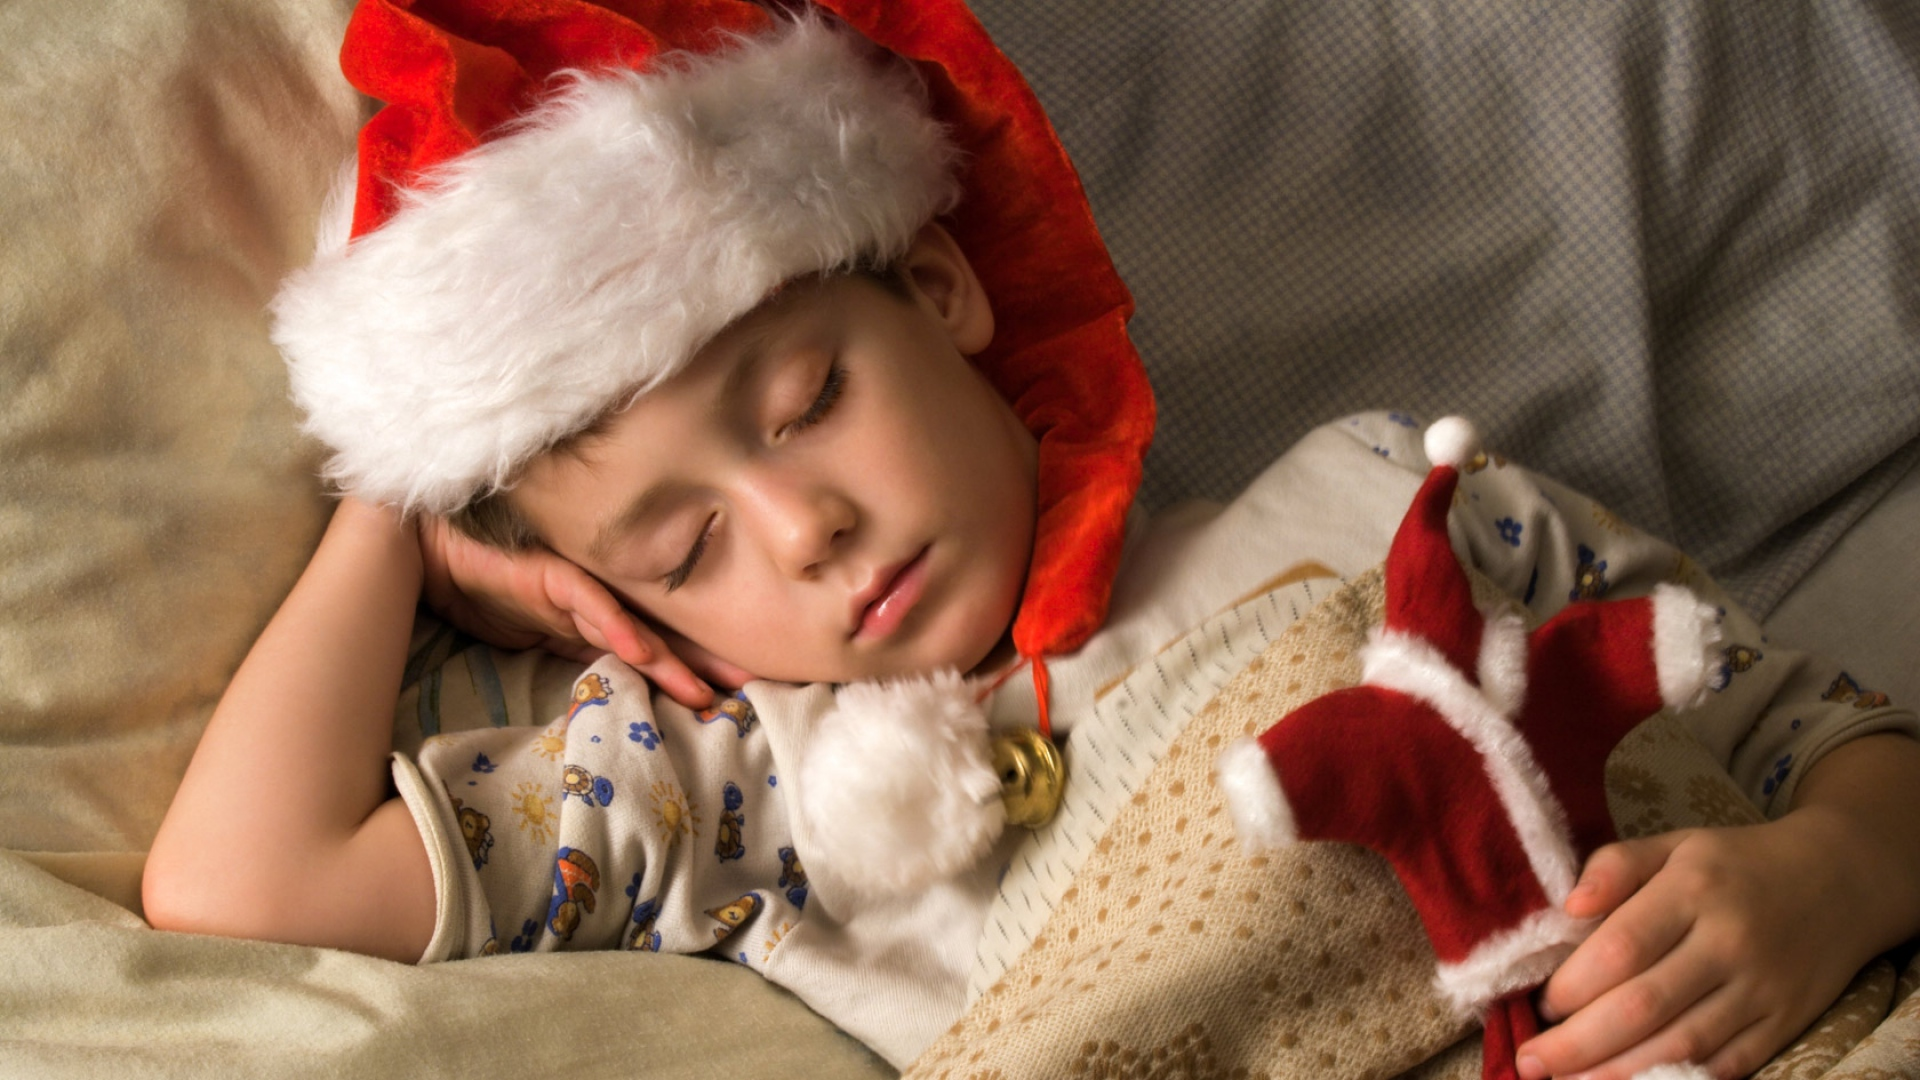 baby_christmas_sleeping_hat_waiting_miracle_82936_1920x1080